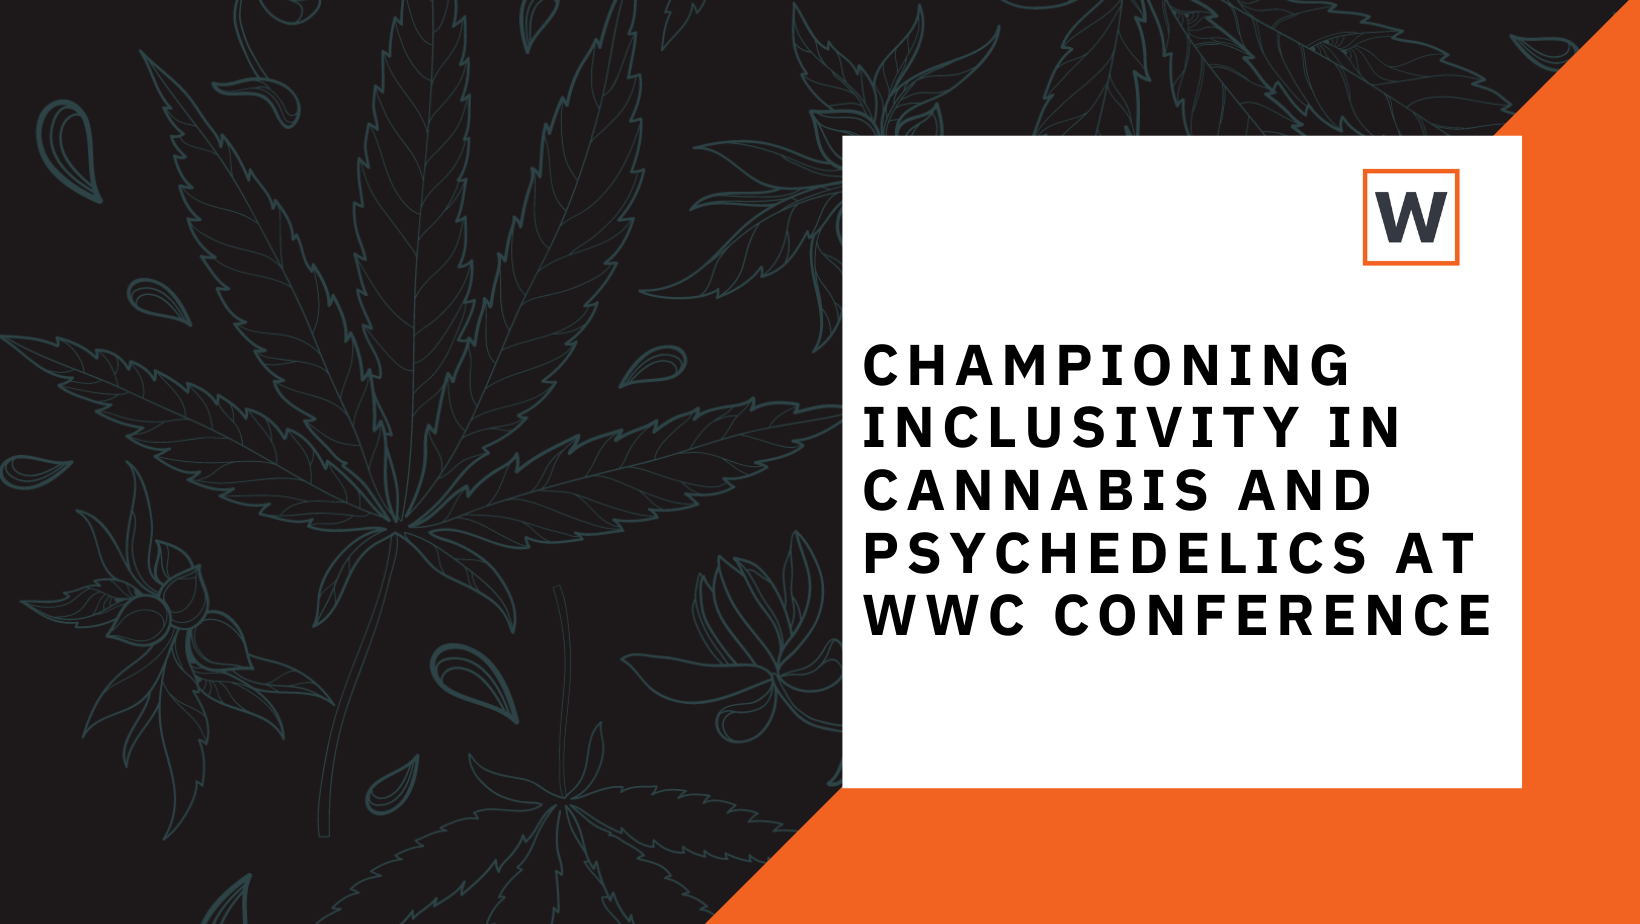 WWC conference